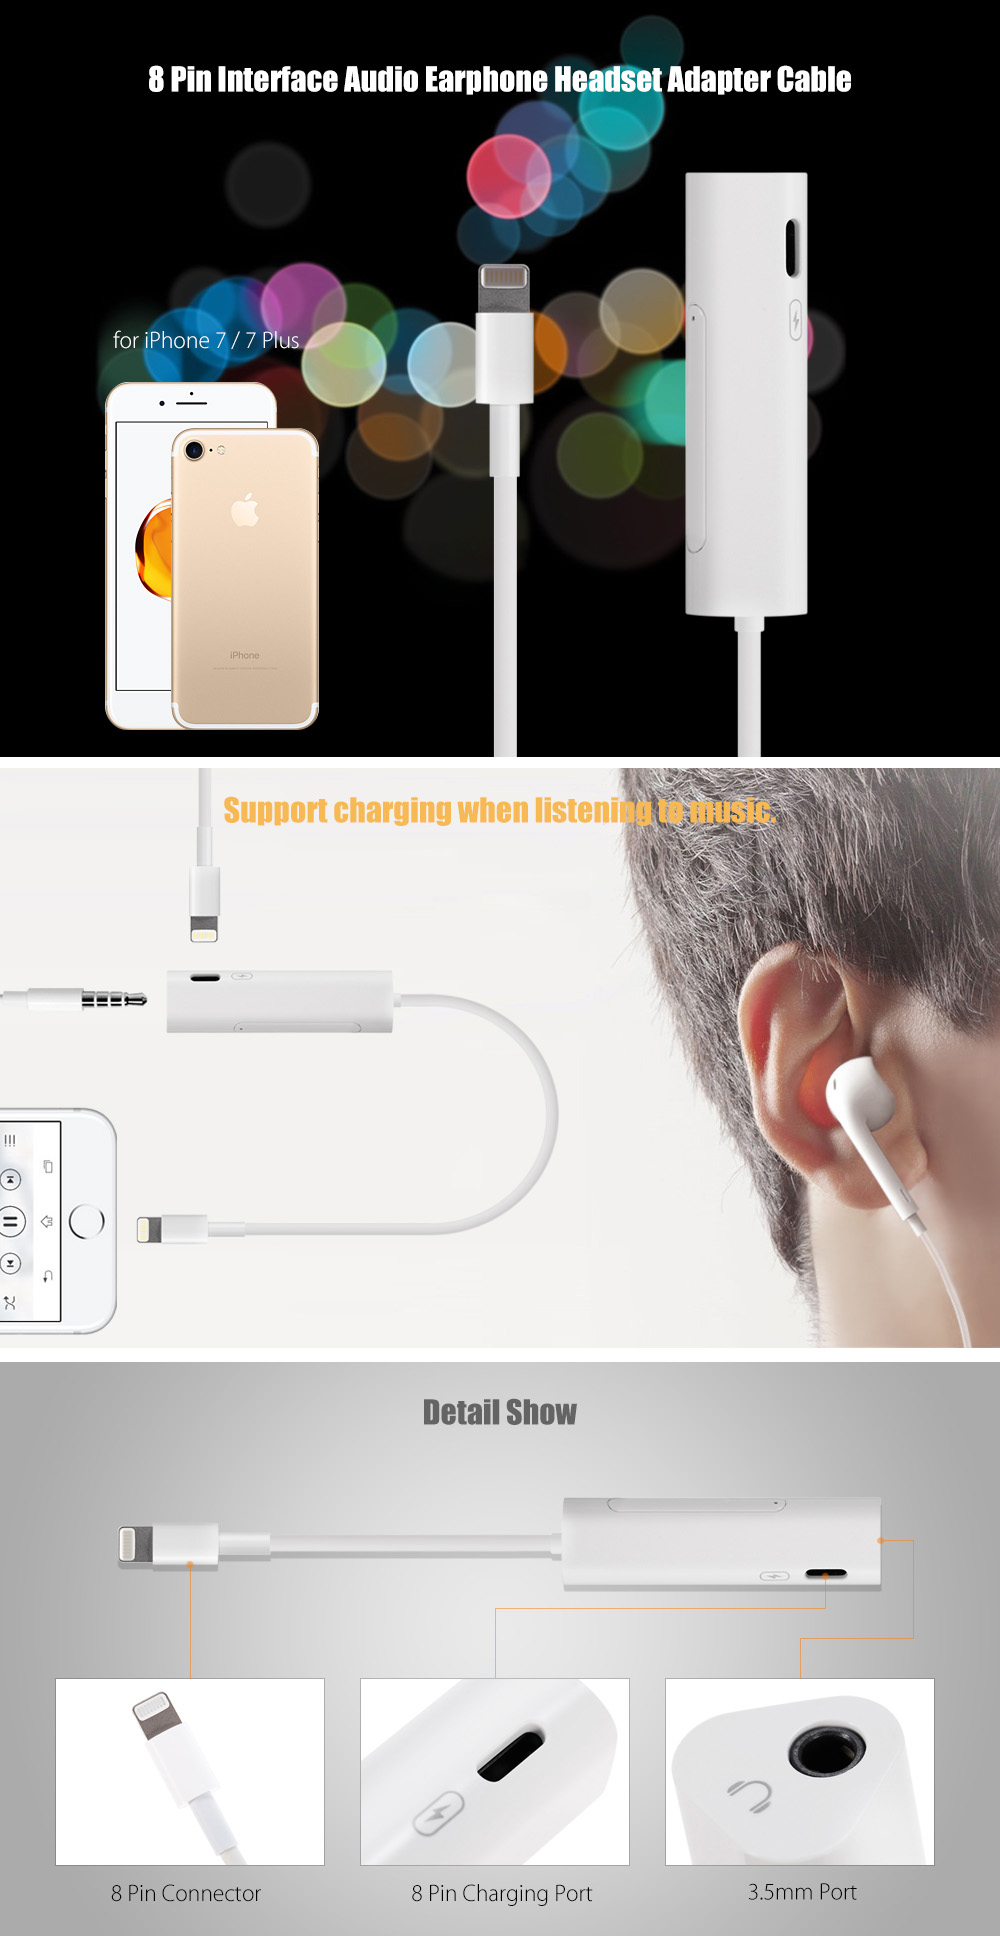 8 Pin Interface Earphone Headset Adapter Cable Support Charging for iPhone 7 / 7 Plus